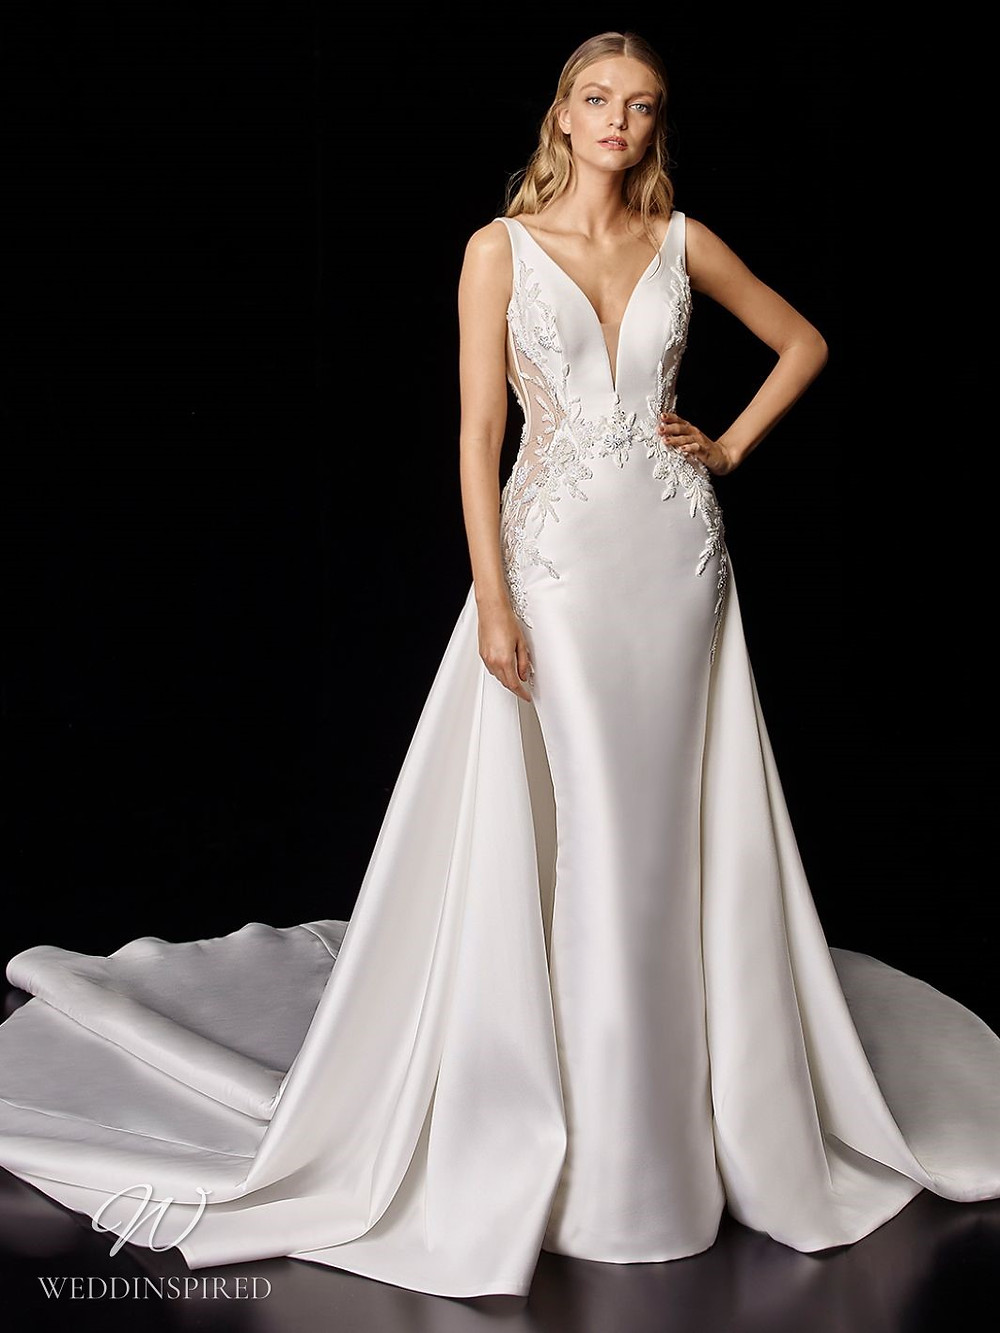 An Enzoani silk column wedding dress with lace illusion inserts, a v neckline and a cape with a train